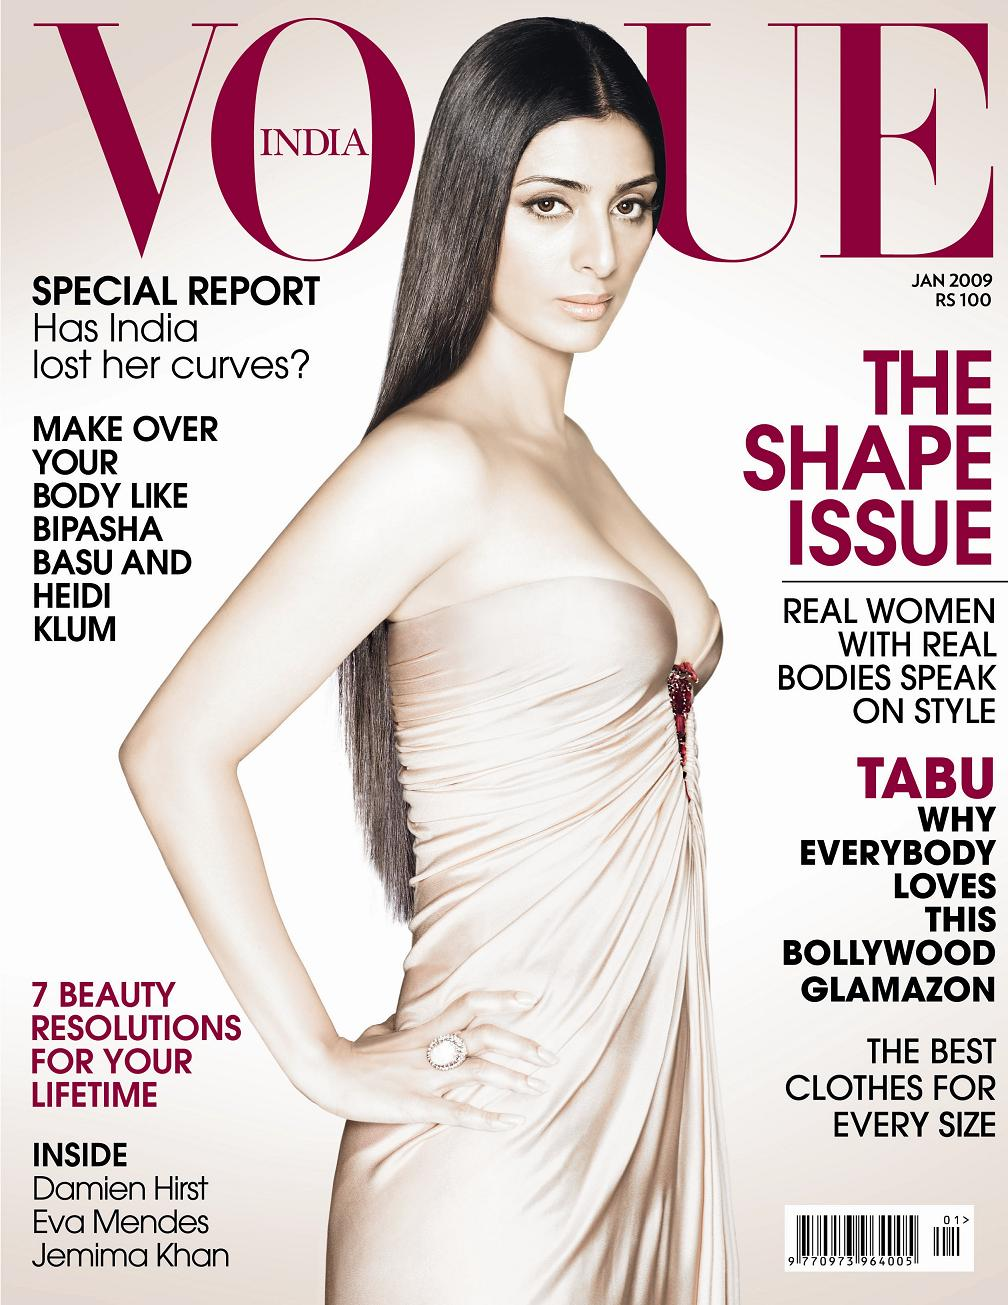 Tabu Vogue Cover - Hot and Sexy!